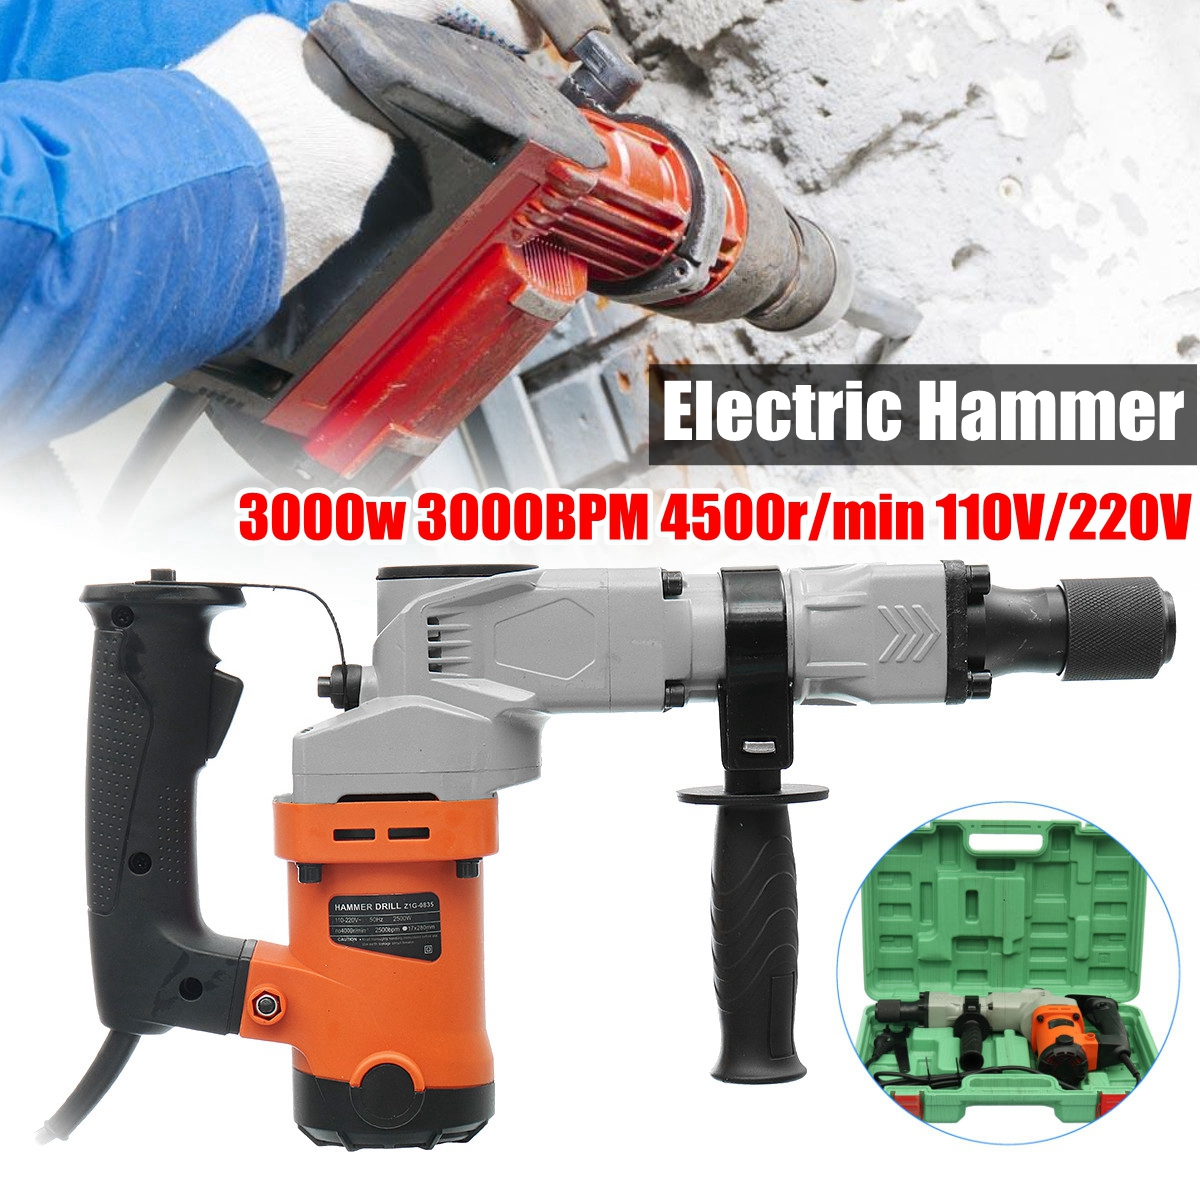 лучшая цена 220V Electric Drills 3000W Electric Demolition Hammer Drill Concrete Breaker Punch Jackhammer 3000BPM